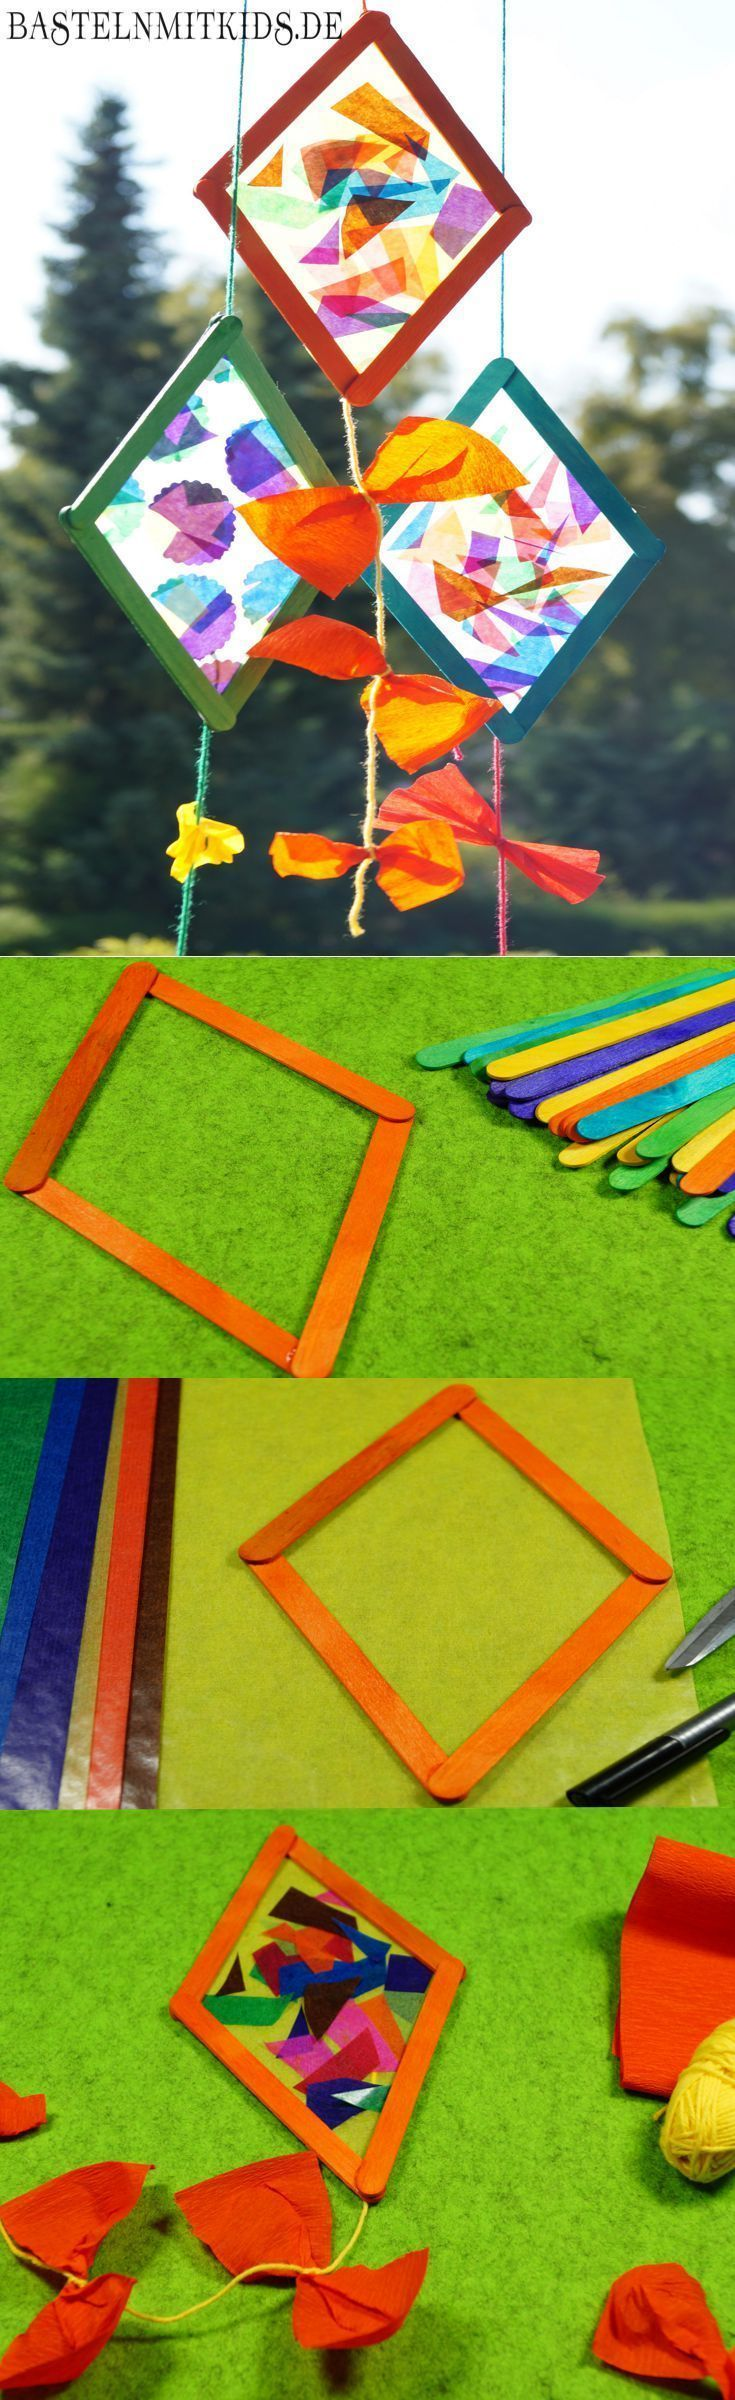 This is in German, but it looks like a cute kite craft for kids